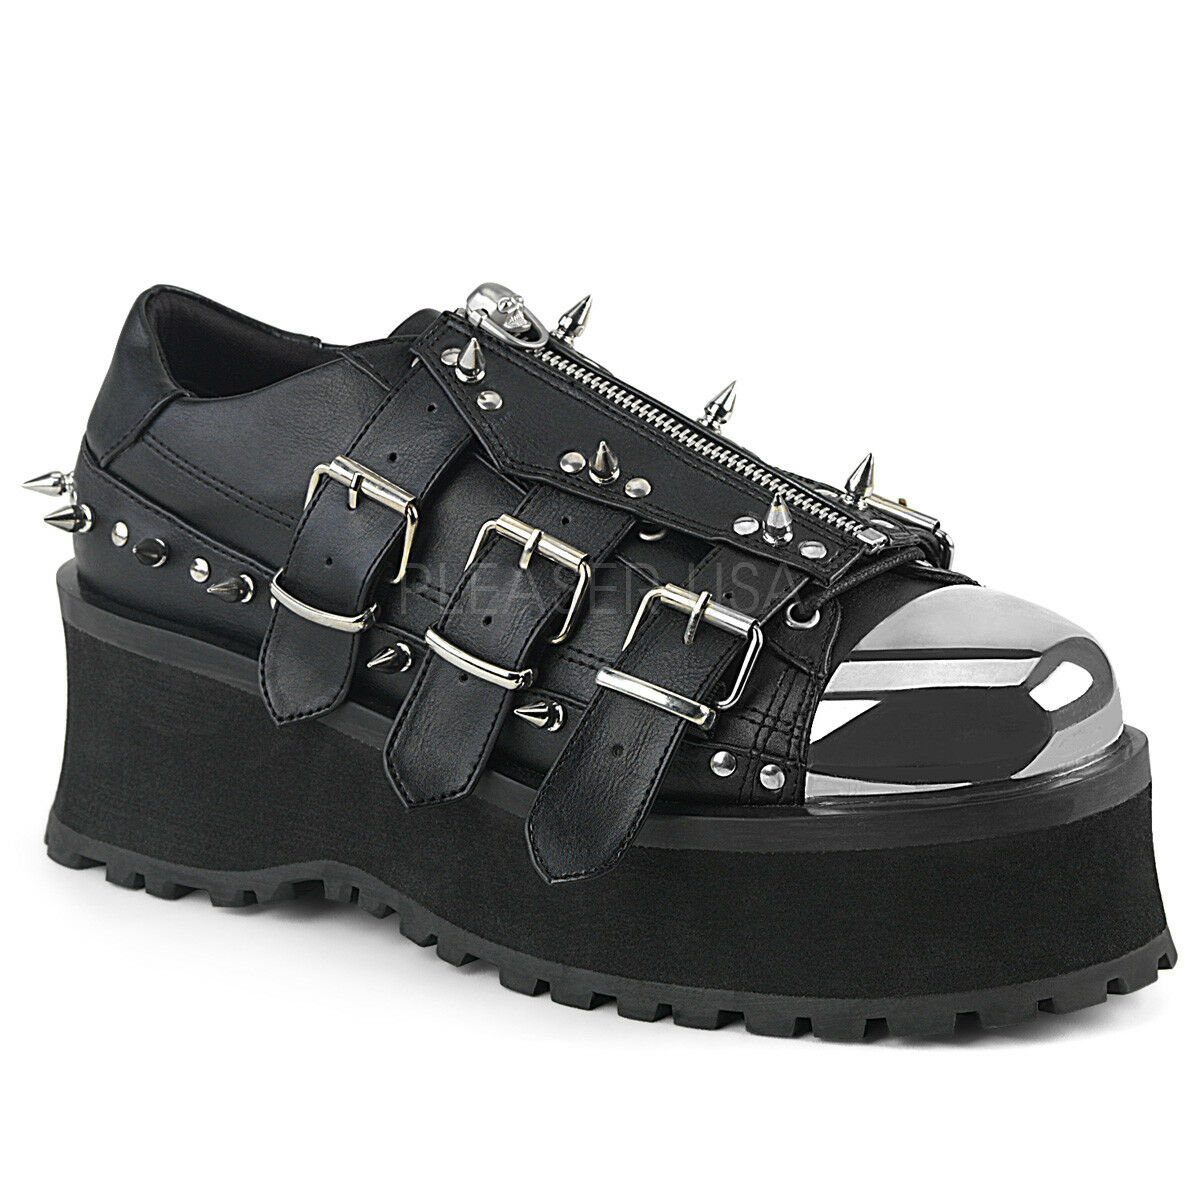 GRAVEDIGGER-03  UNISEX PUNK GOTH RAVE CHROME PLATE TOE CAP STUDDED  WEDGE OXFORD